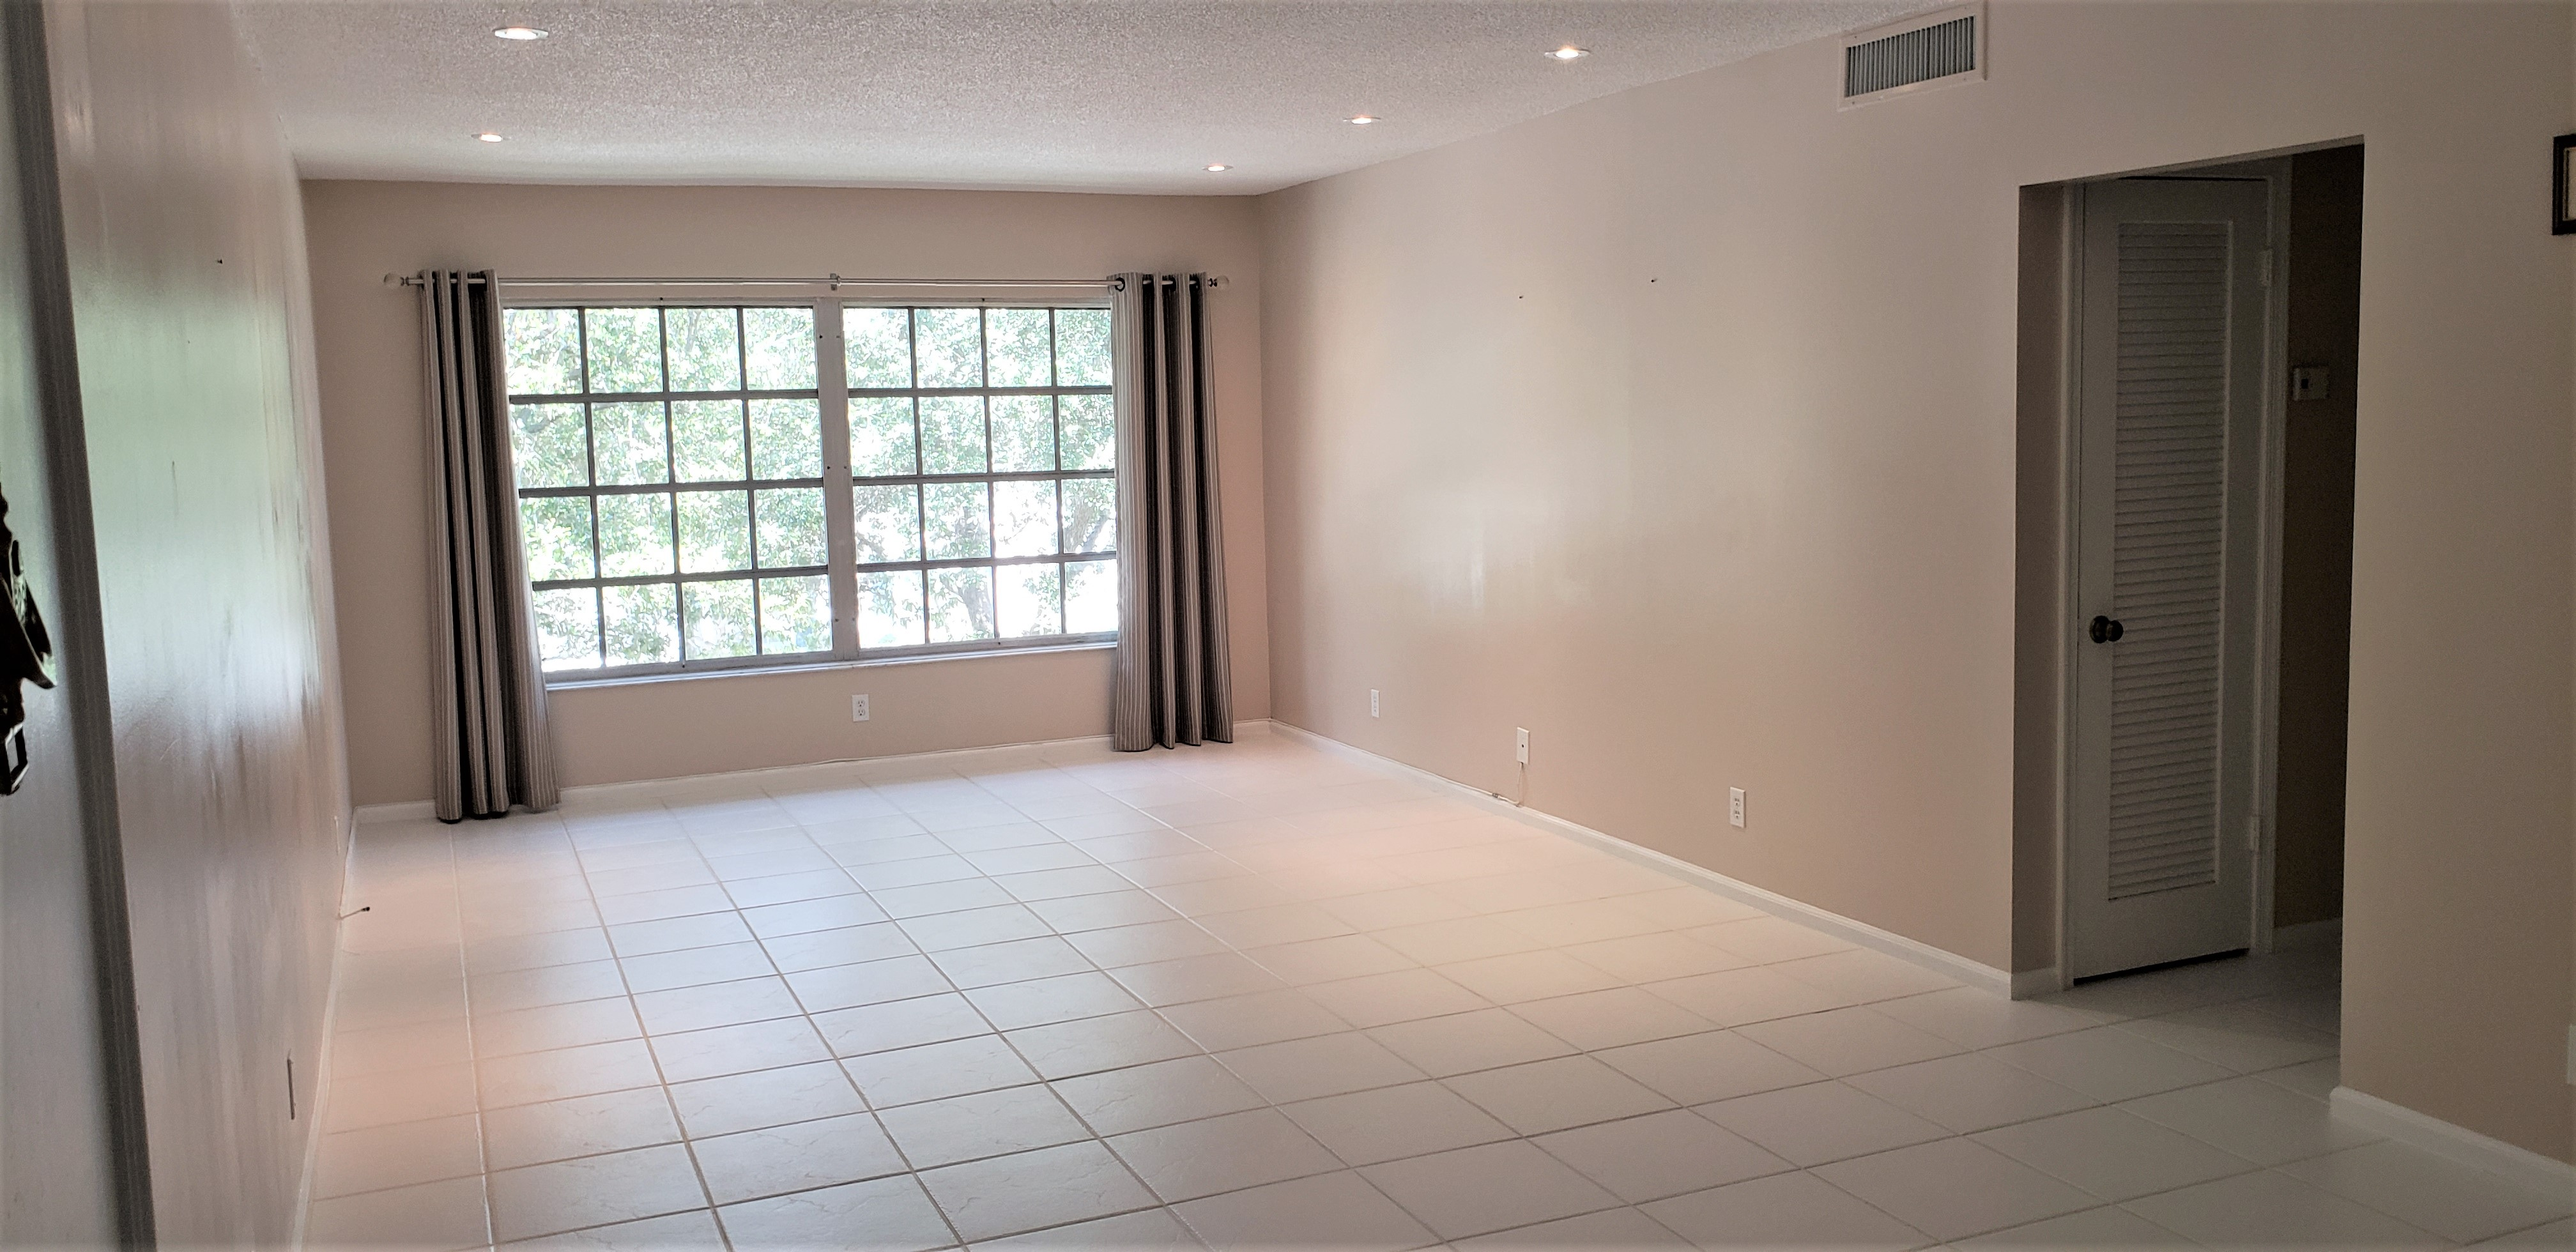 Desirable NE Ft Laud minutes from the Beach close to shoppes very clean and ready to move in